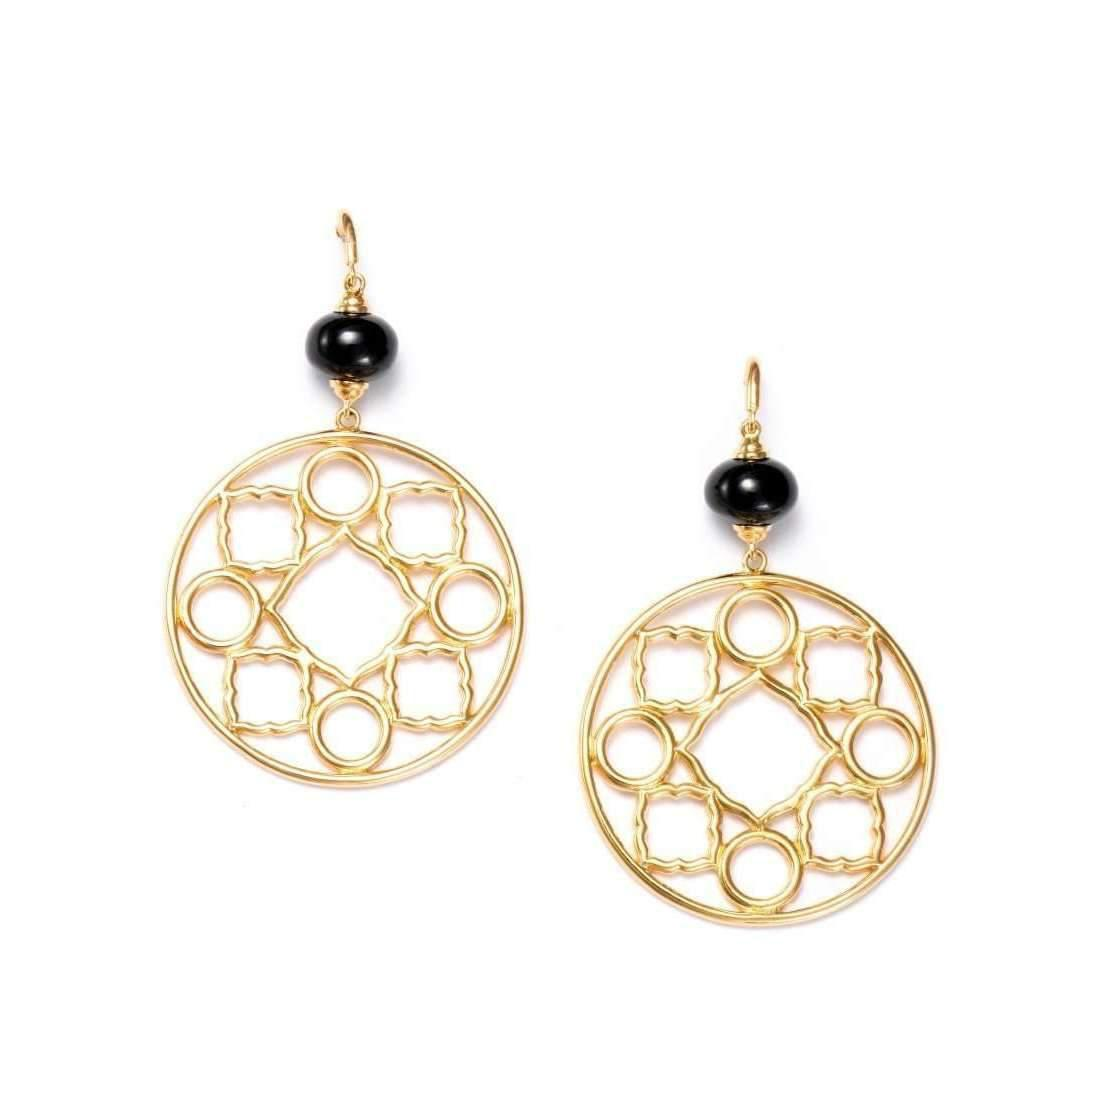 Syna 18kt Mogul Earrings With Black Spinel nQnVZ1K